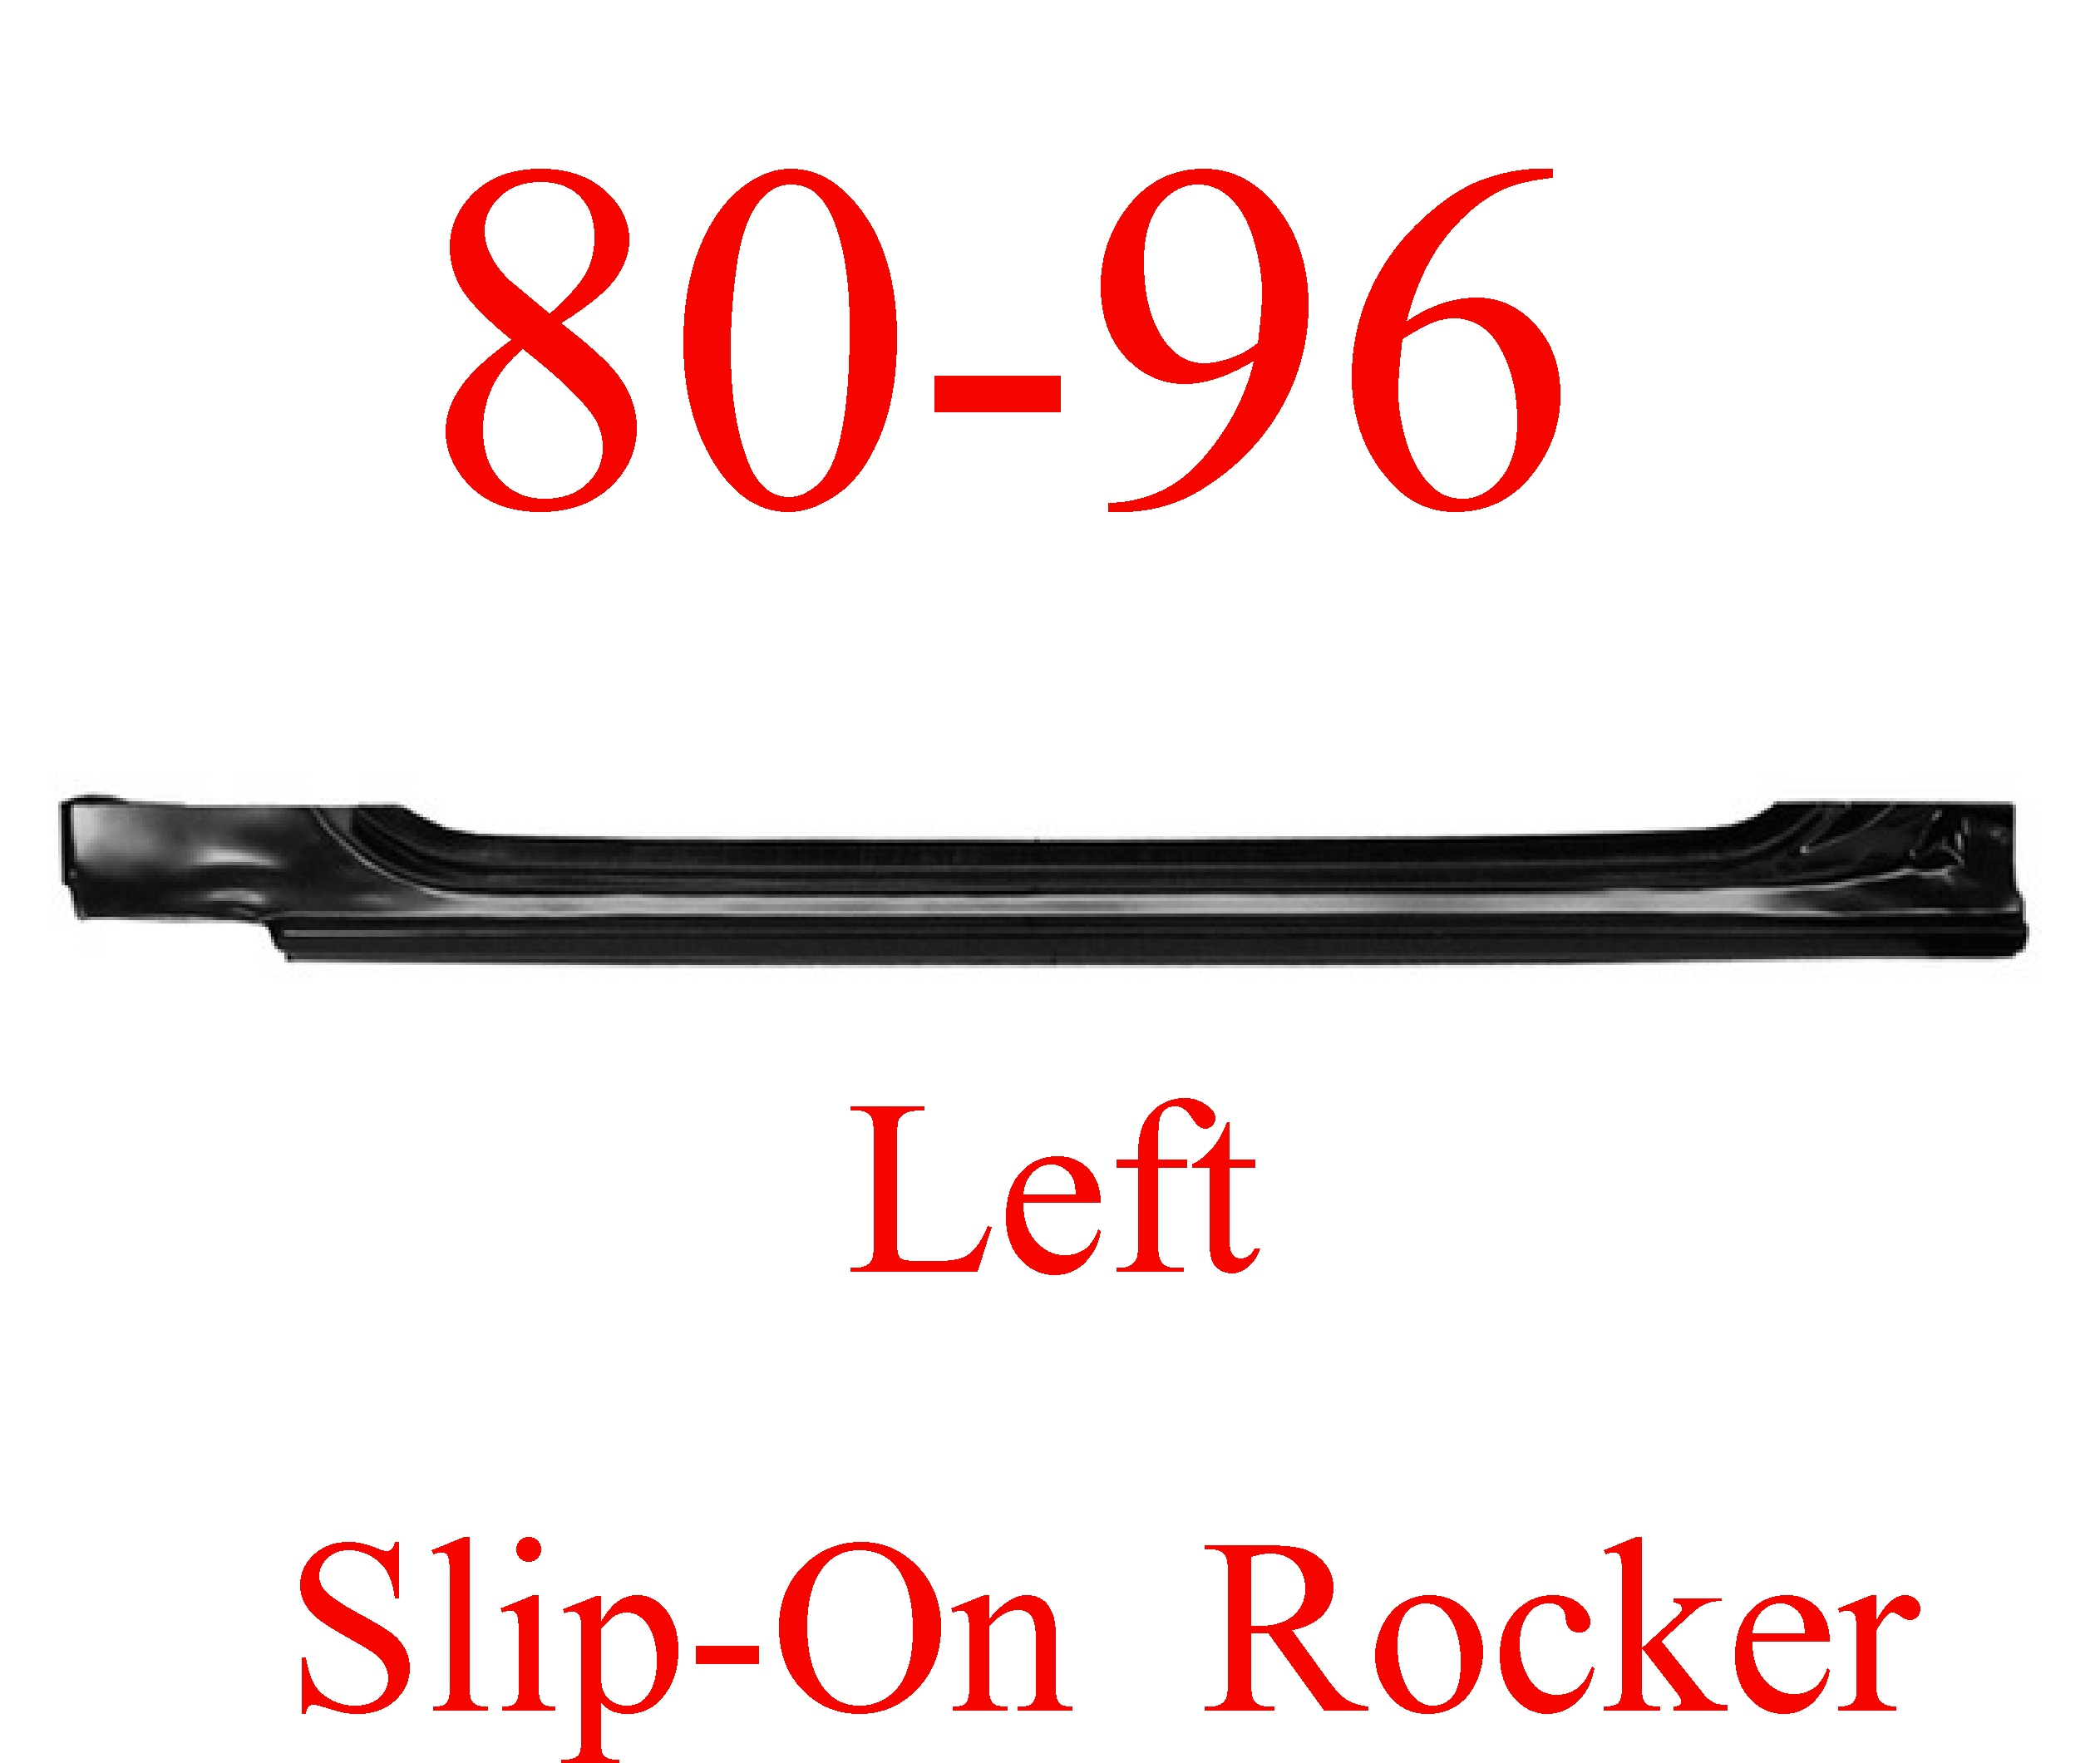 80-96 LEFT Slip-On Rocker Panel Ford Truck & Bronco